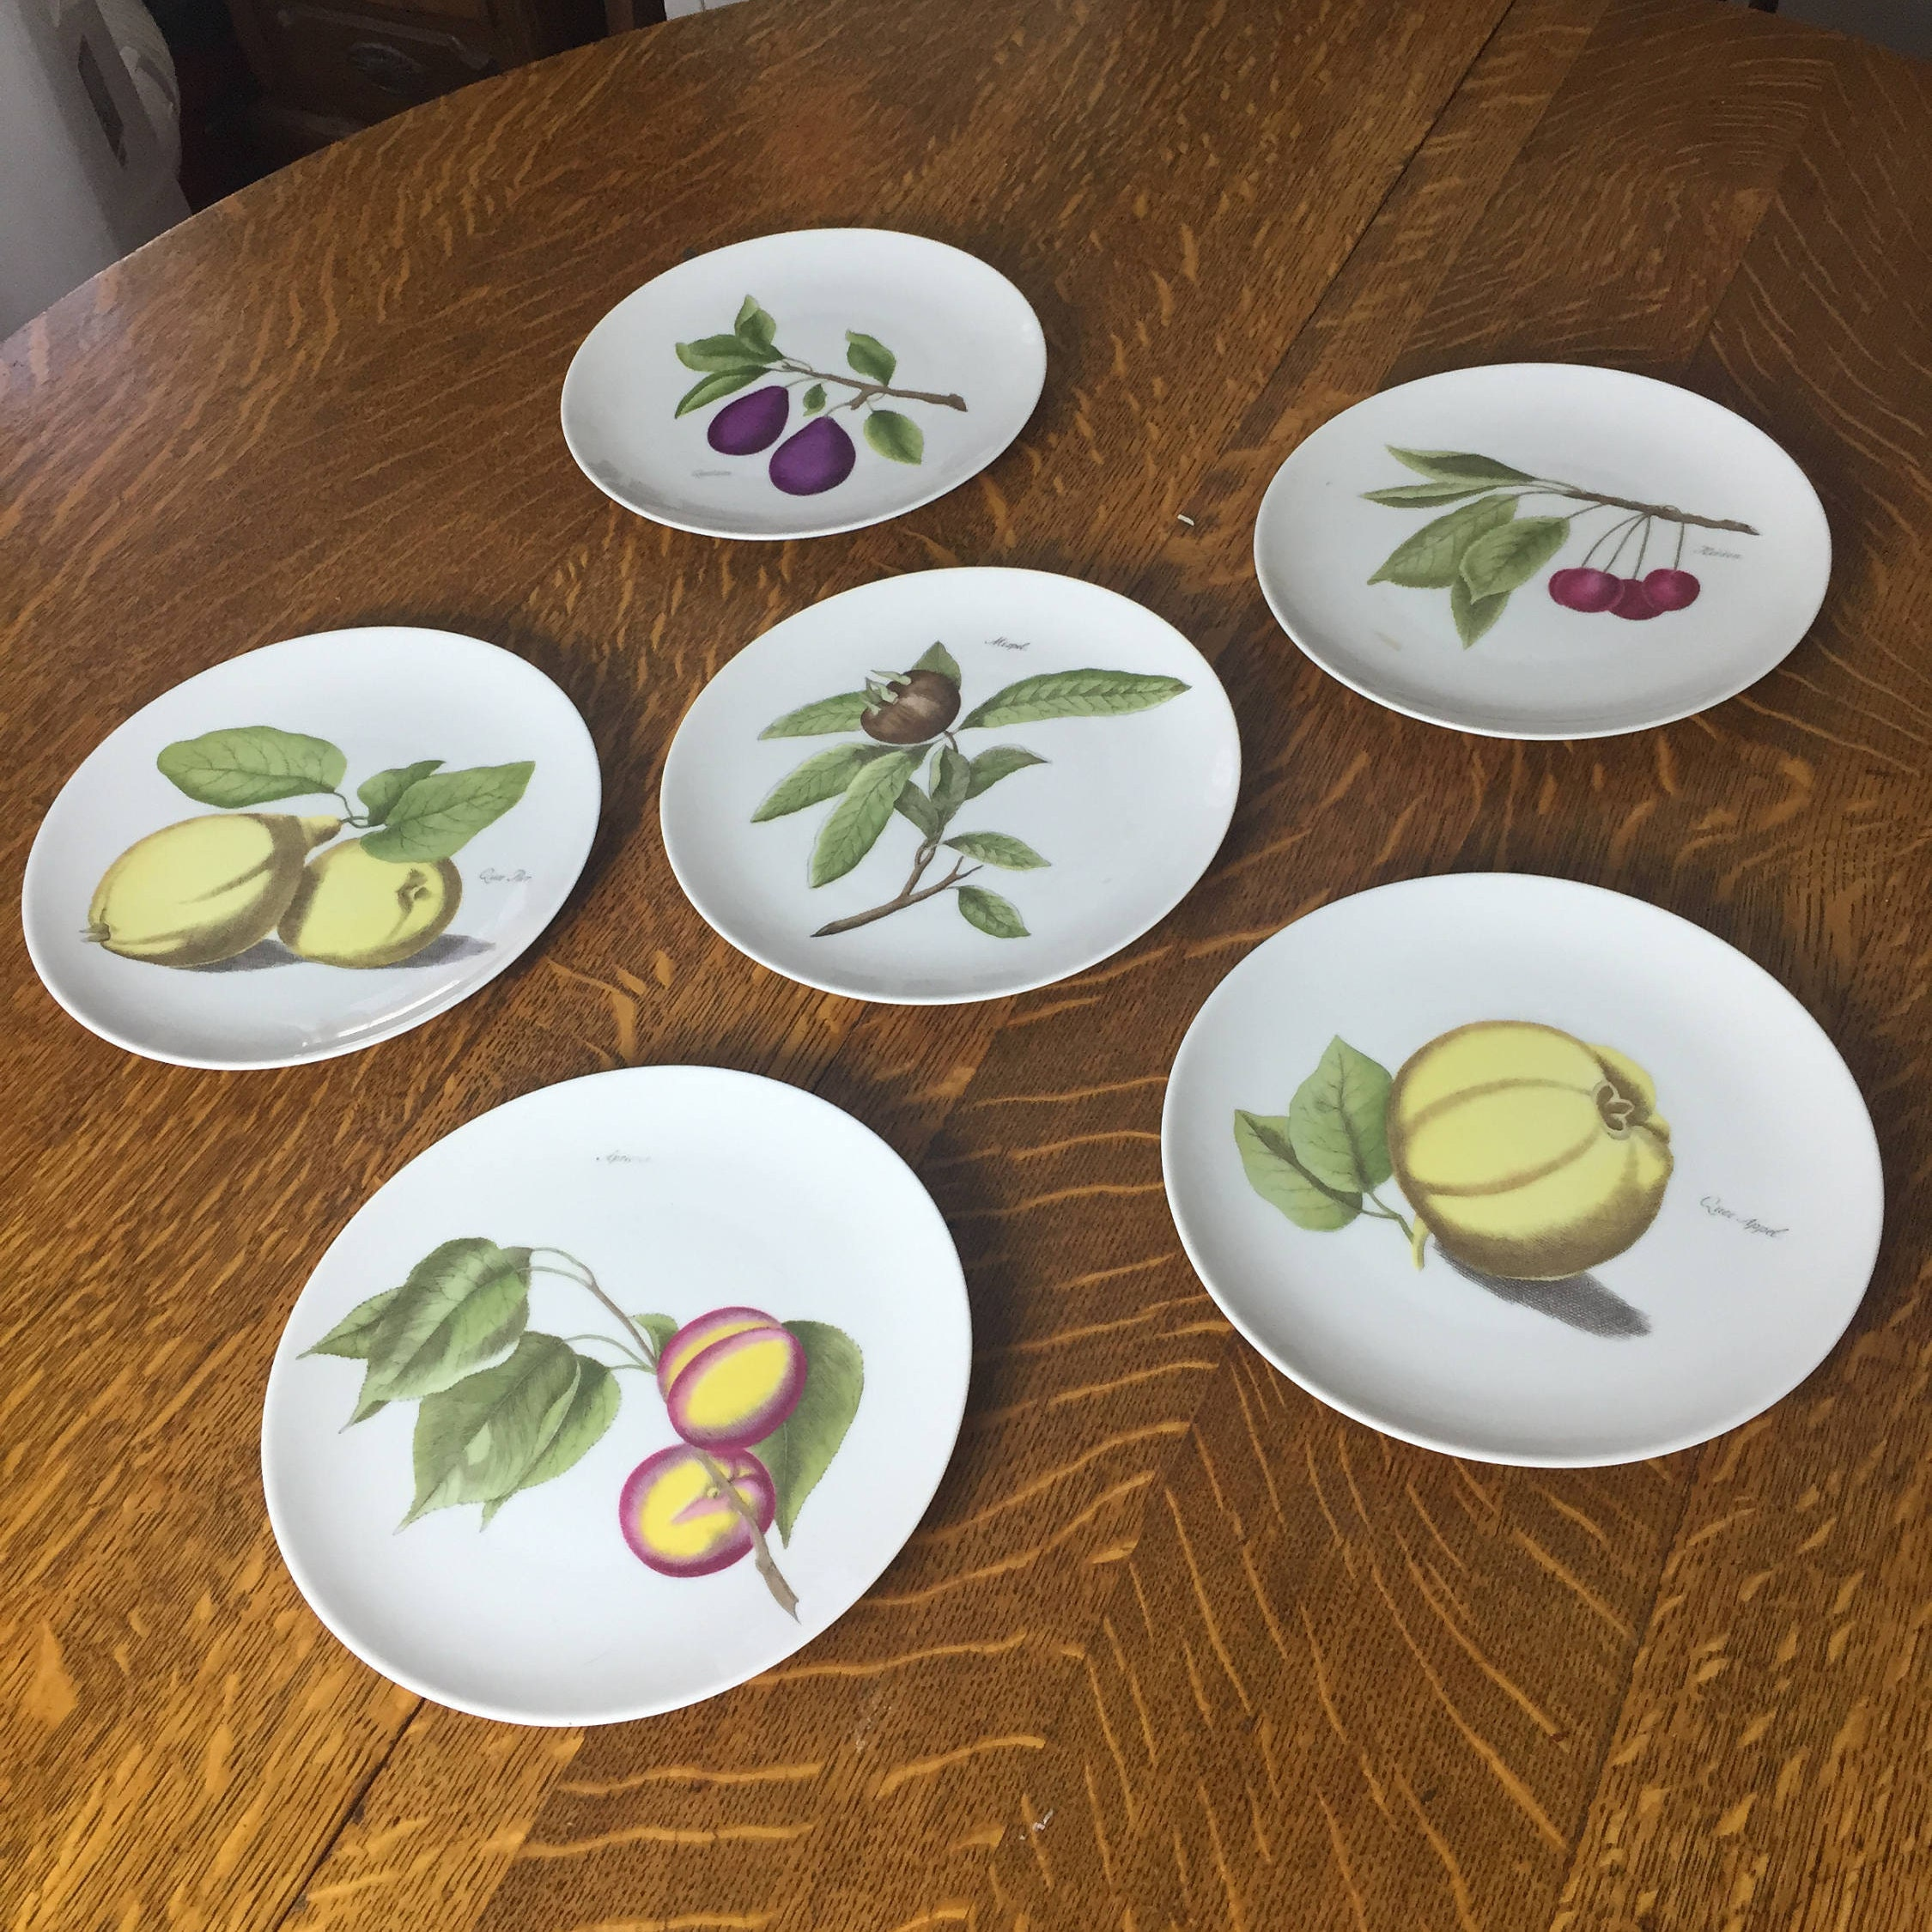 Set of 6 Hutschenreuther Pasco Germany White Fruit Plates 8  Dessert Luncheon Plate & Set of 6 Hutschenreuther Pasco Germany White Fruit Plates 8 Dessert ...